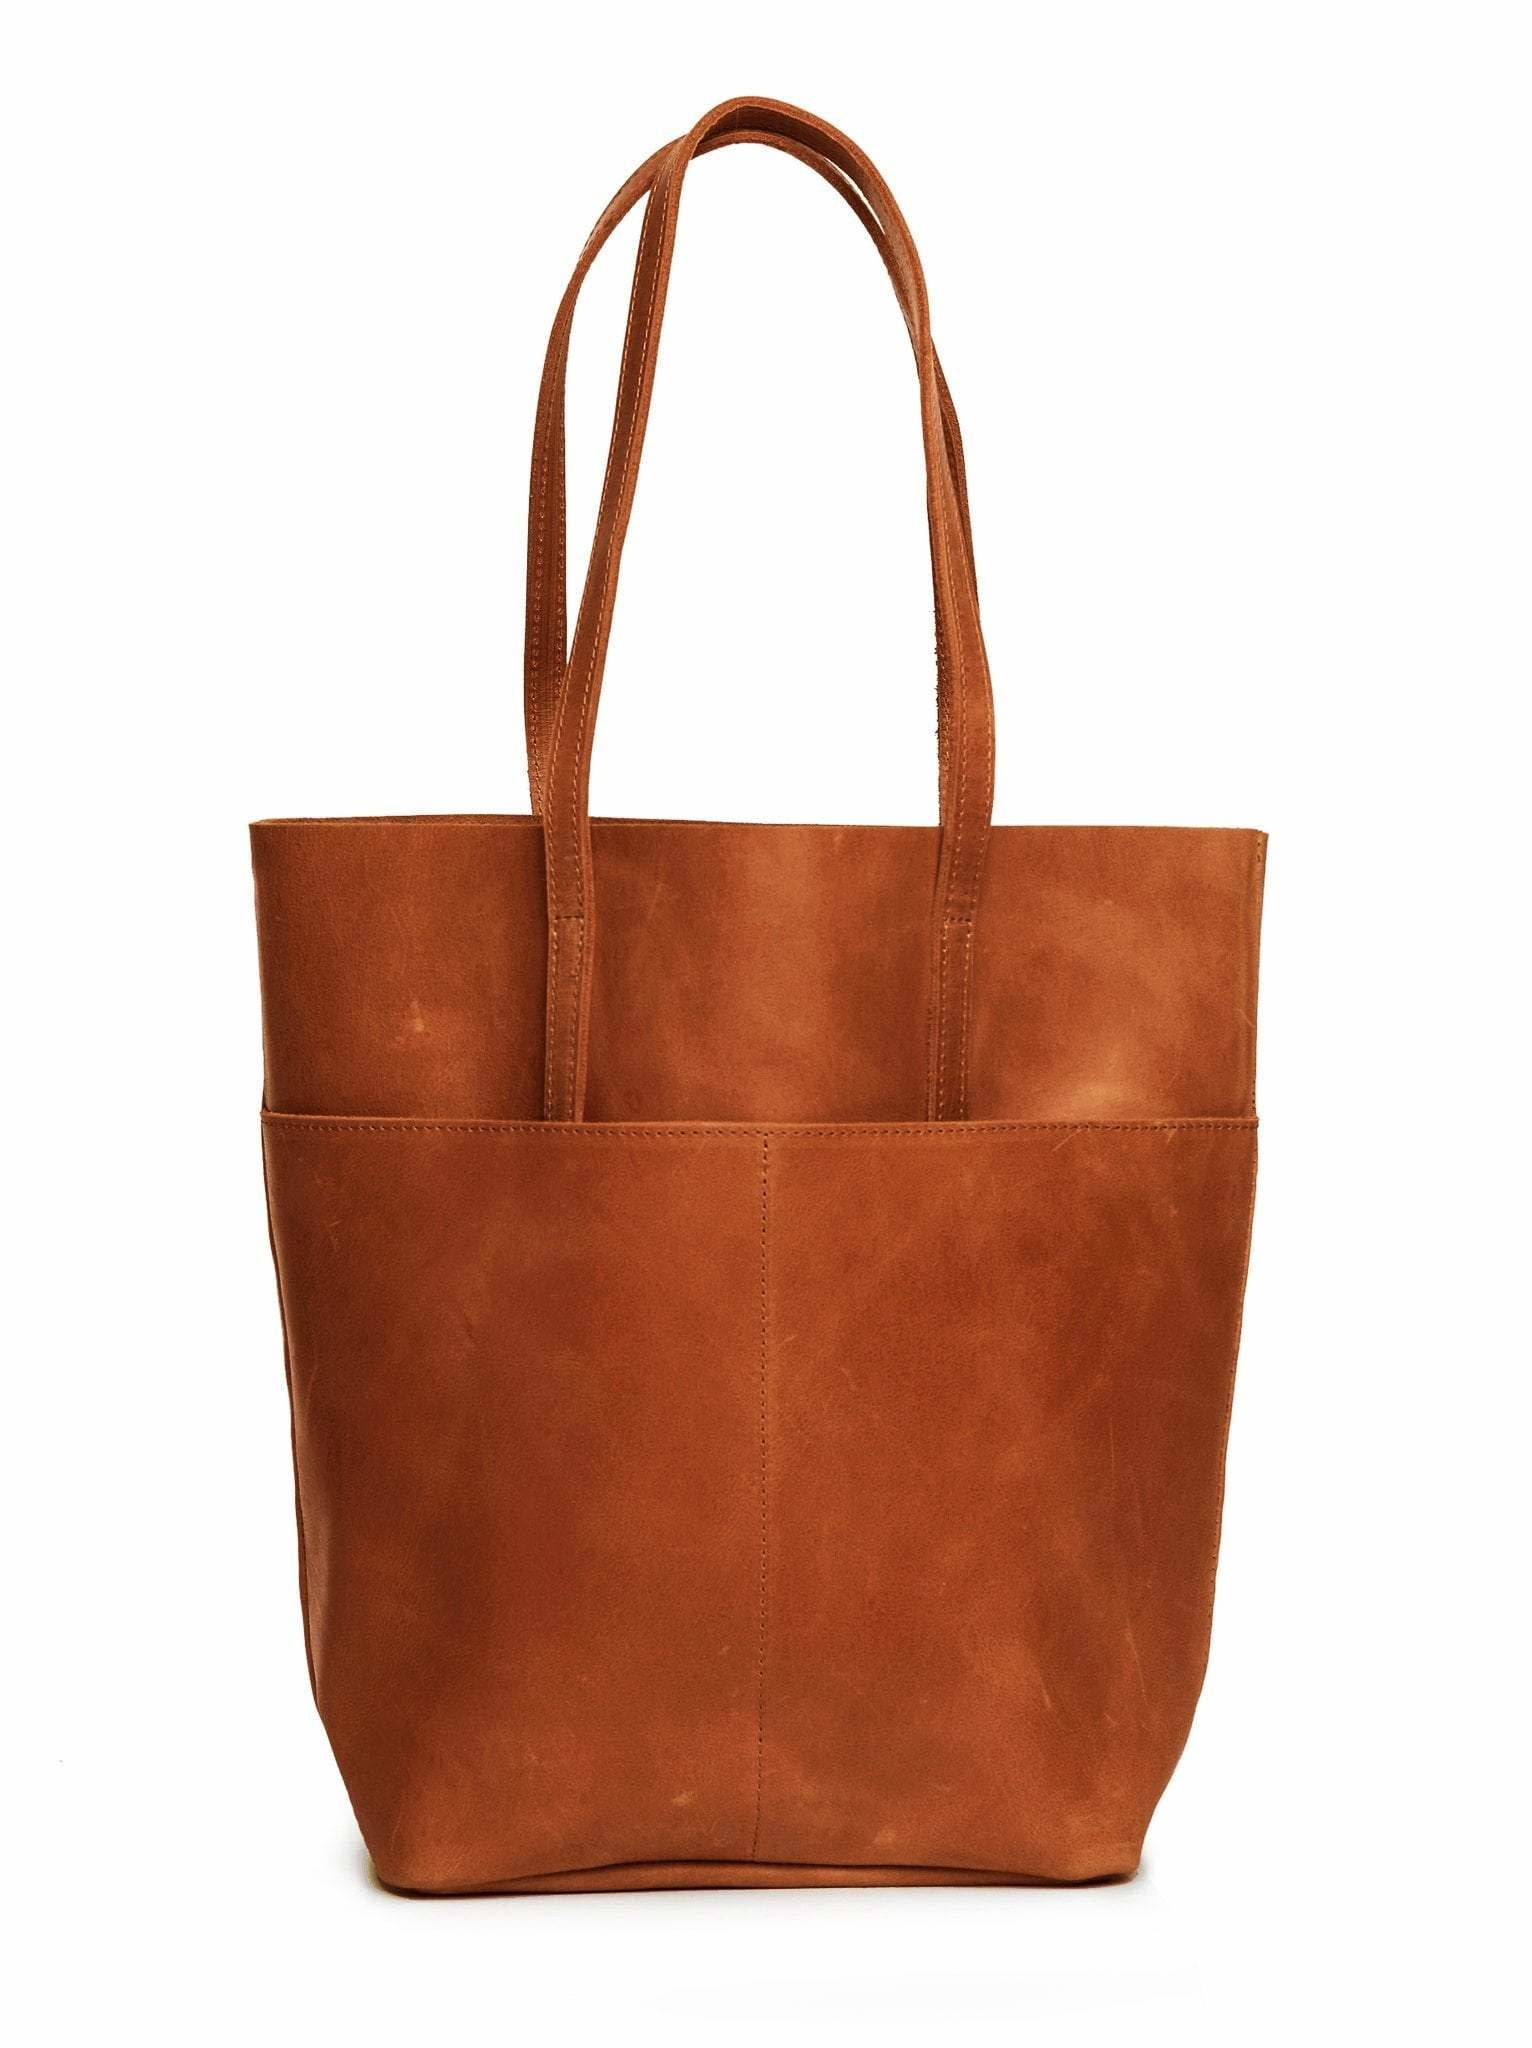 ABLE Selam Magazine Tote